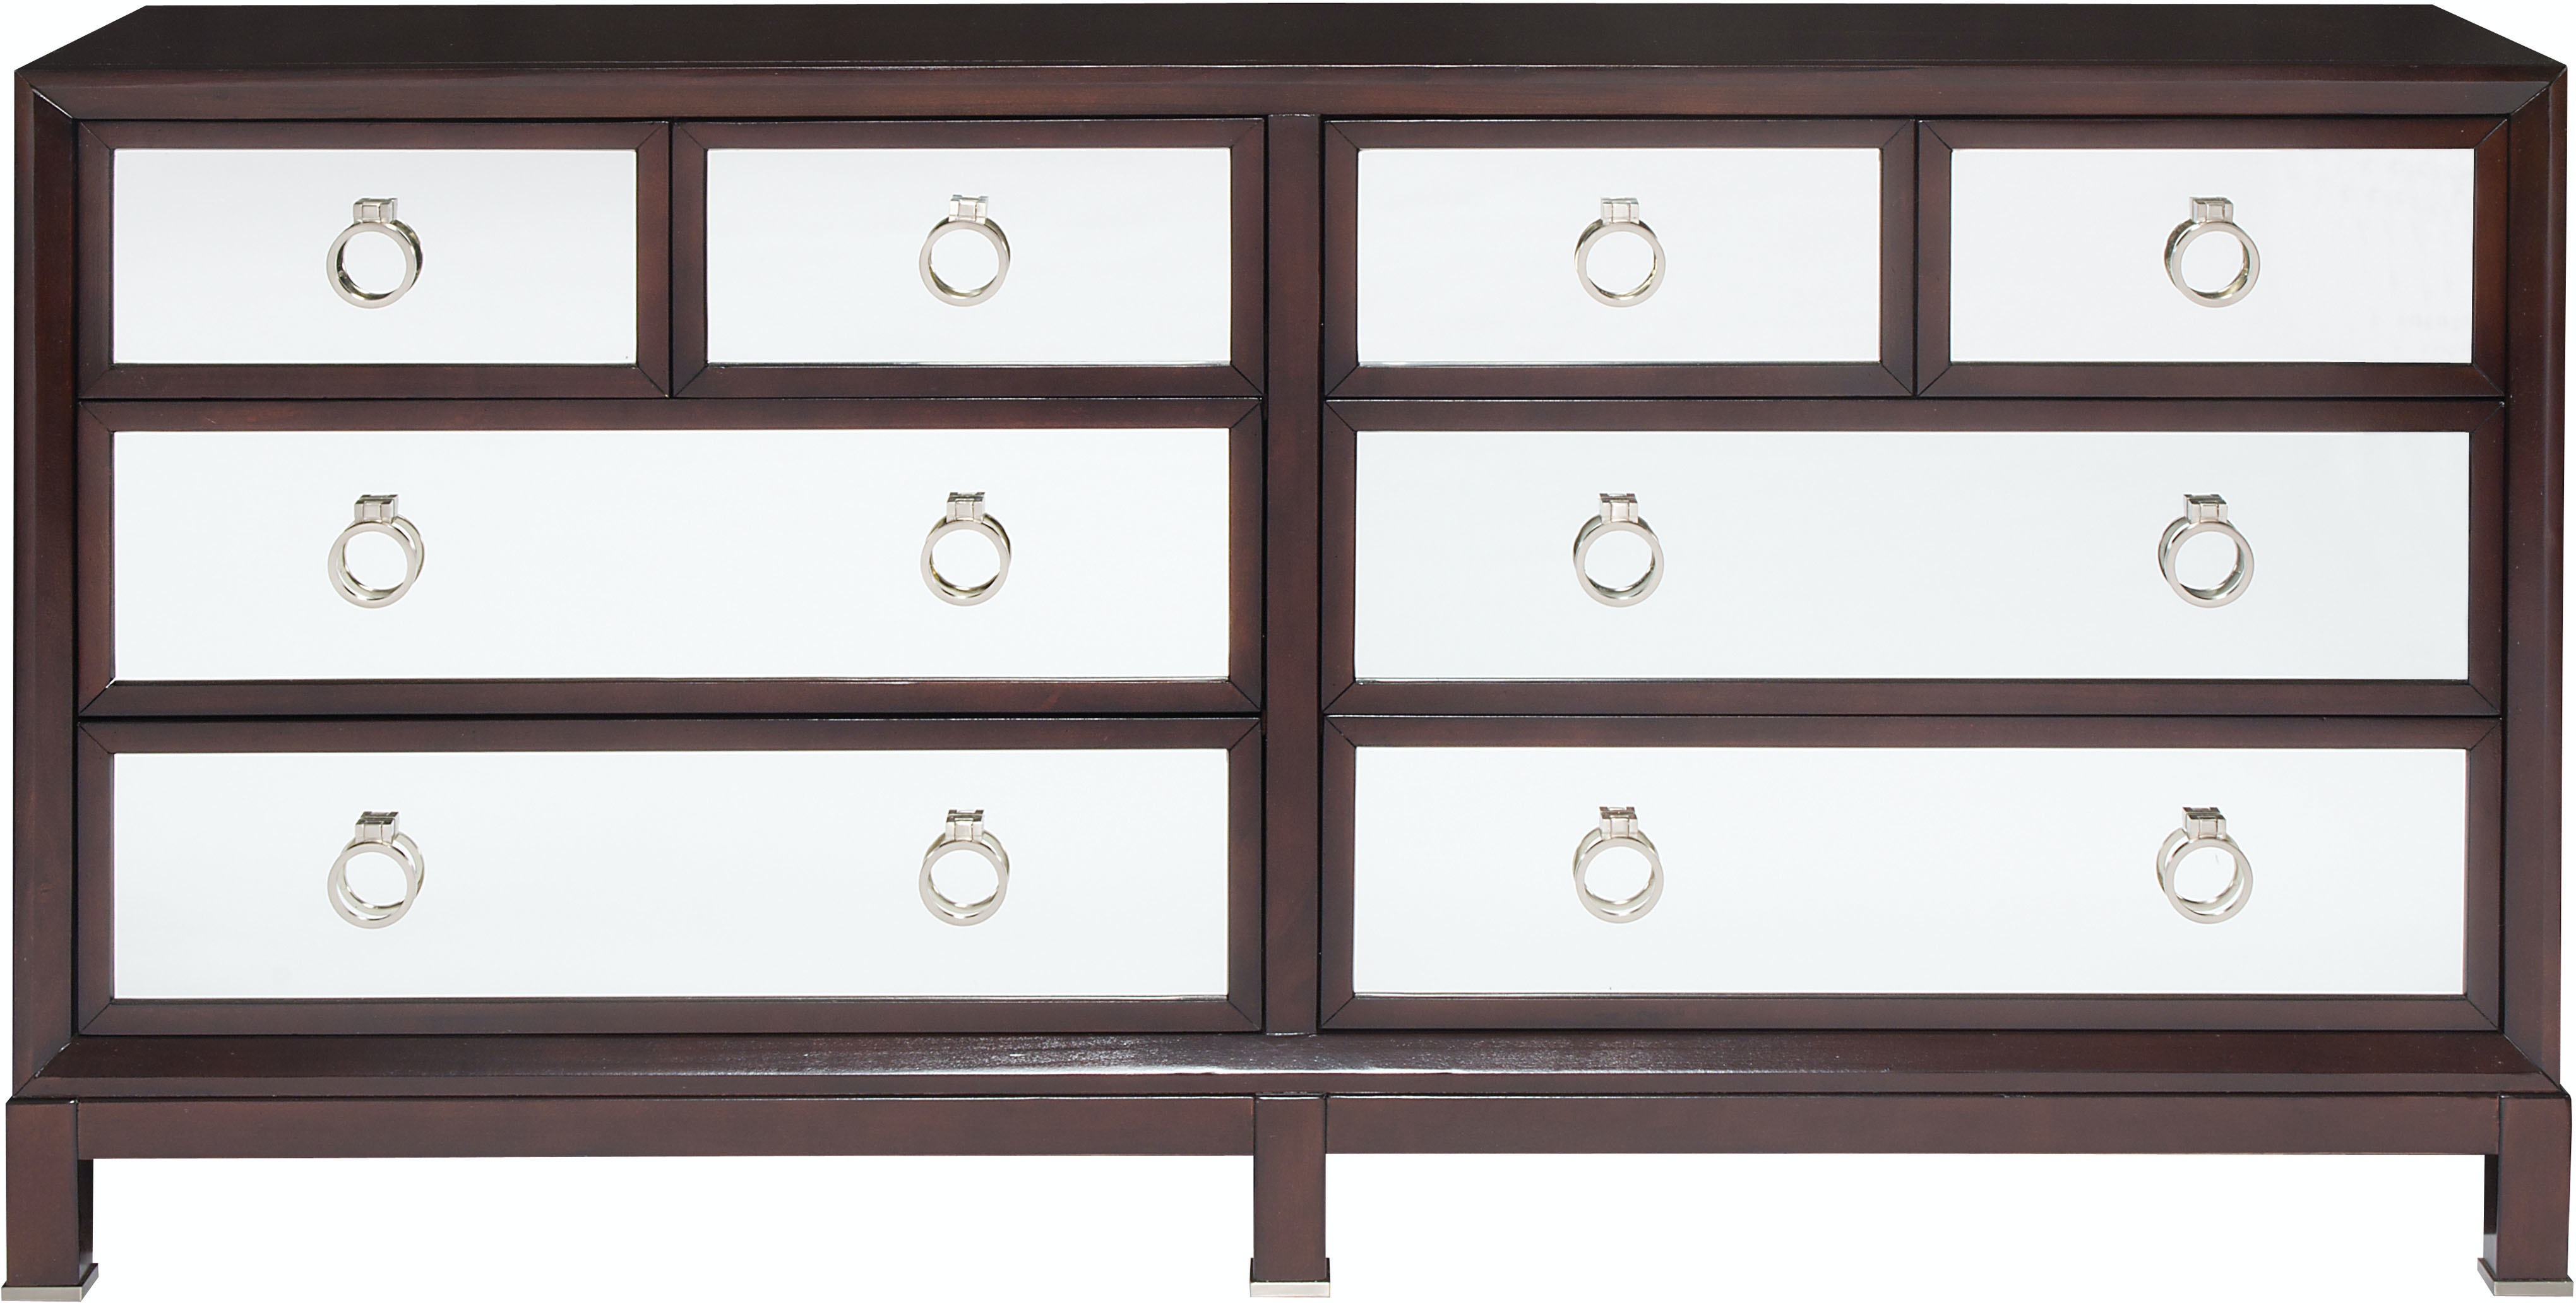 Vanguard Furniture Bedroom Griffith Drawer Chest W367D SU